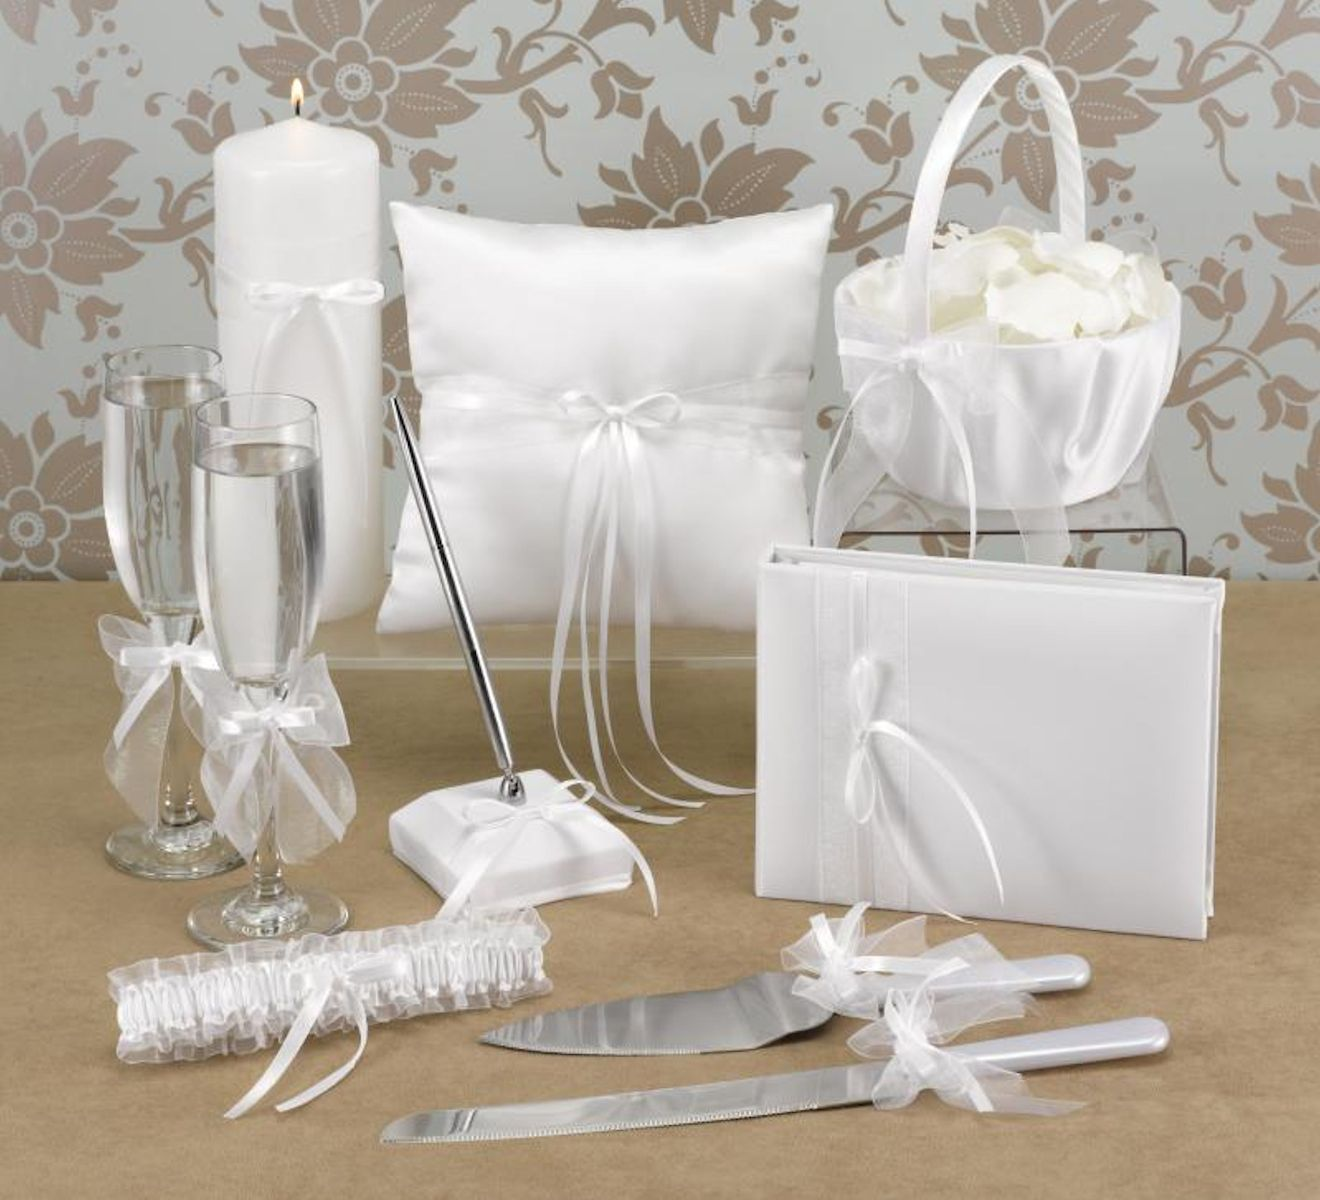 PARTY SUPPLIES - Latino Bride And Groom